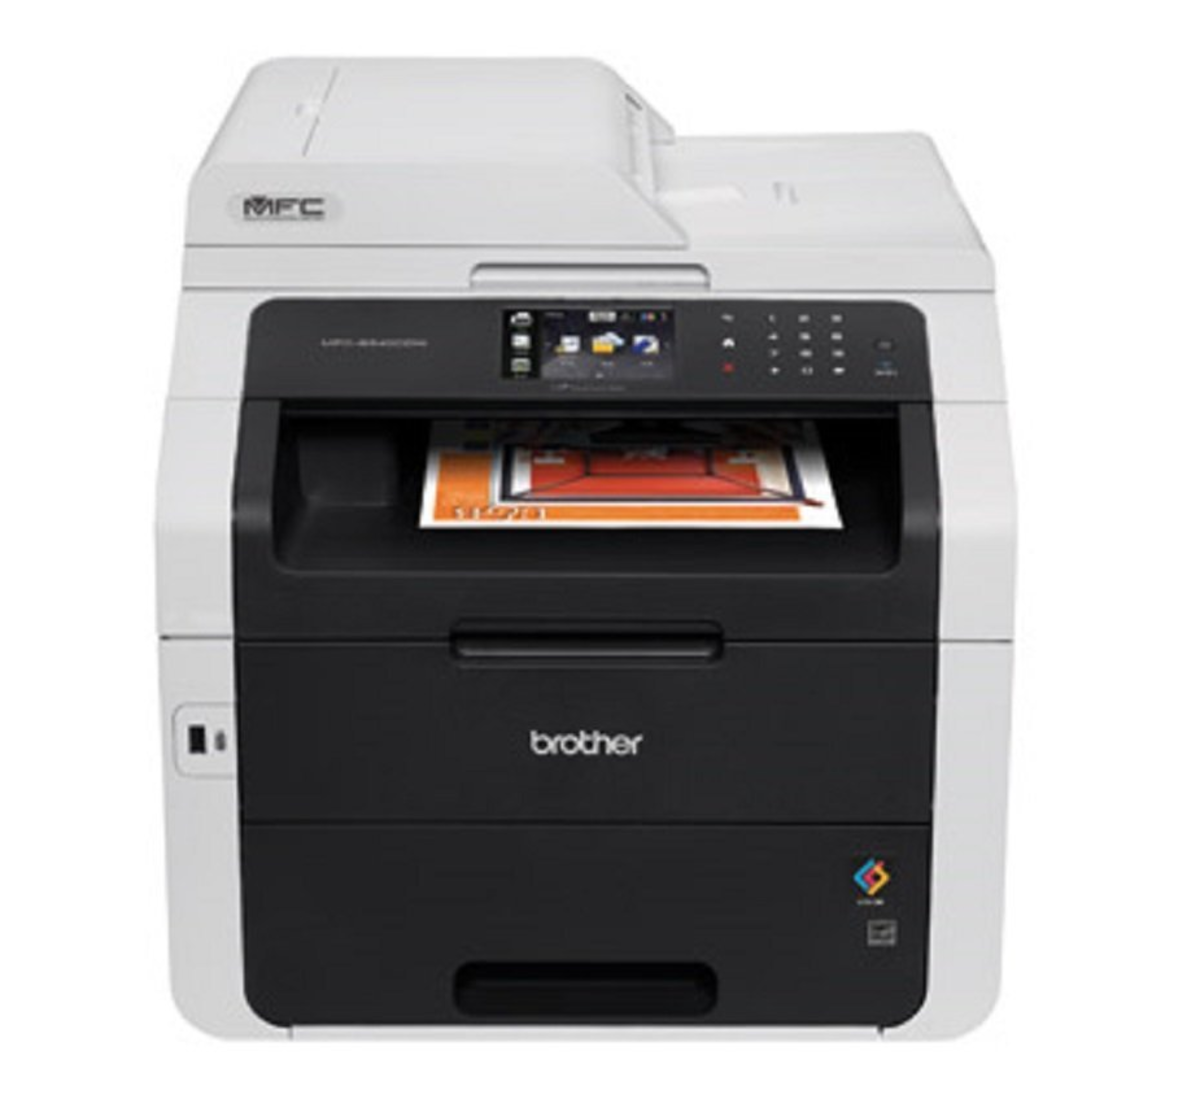 brother dcpl2520dw scanner document with more than on page